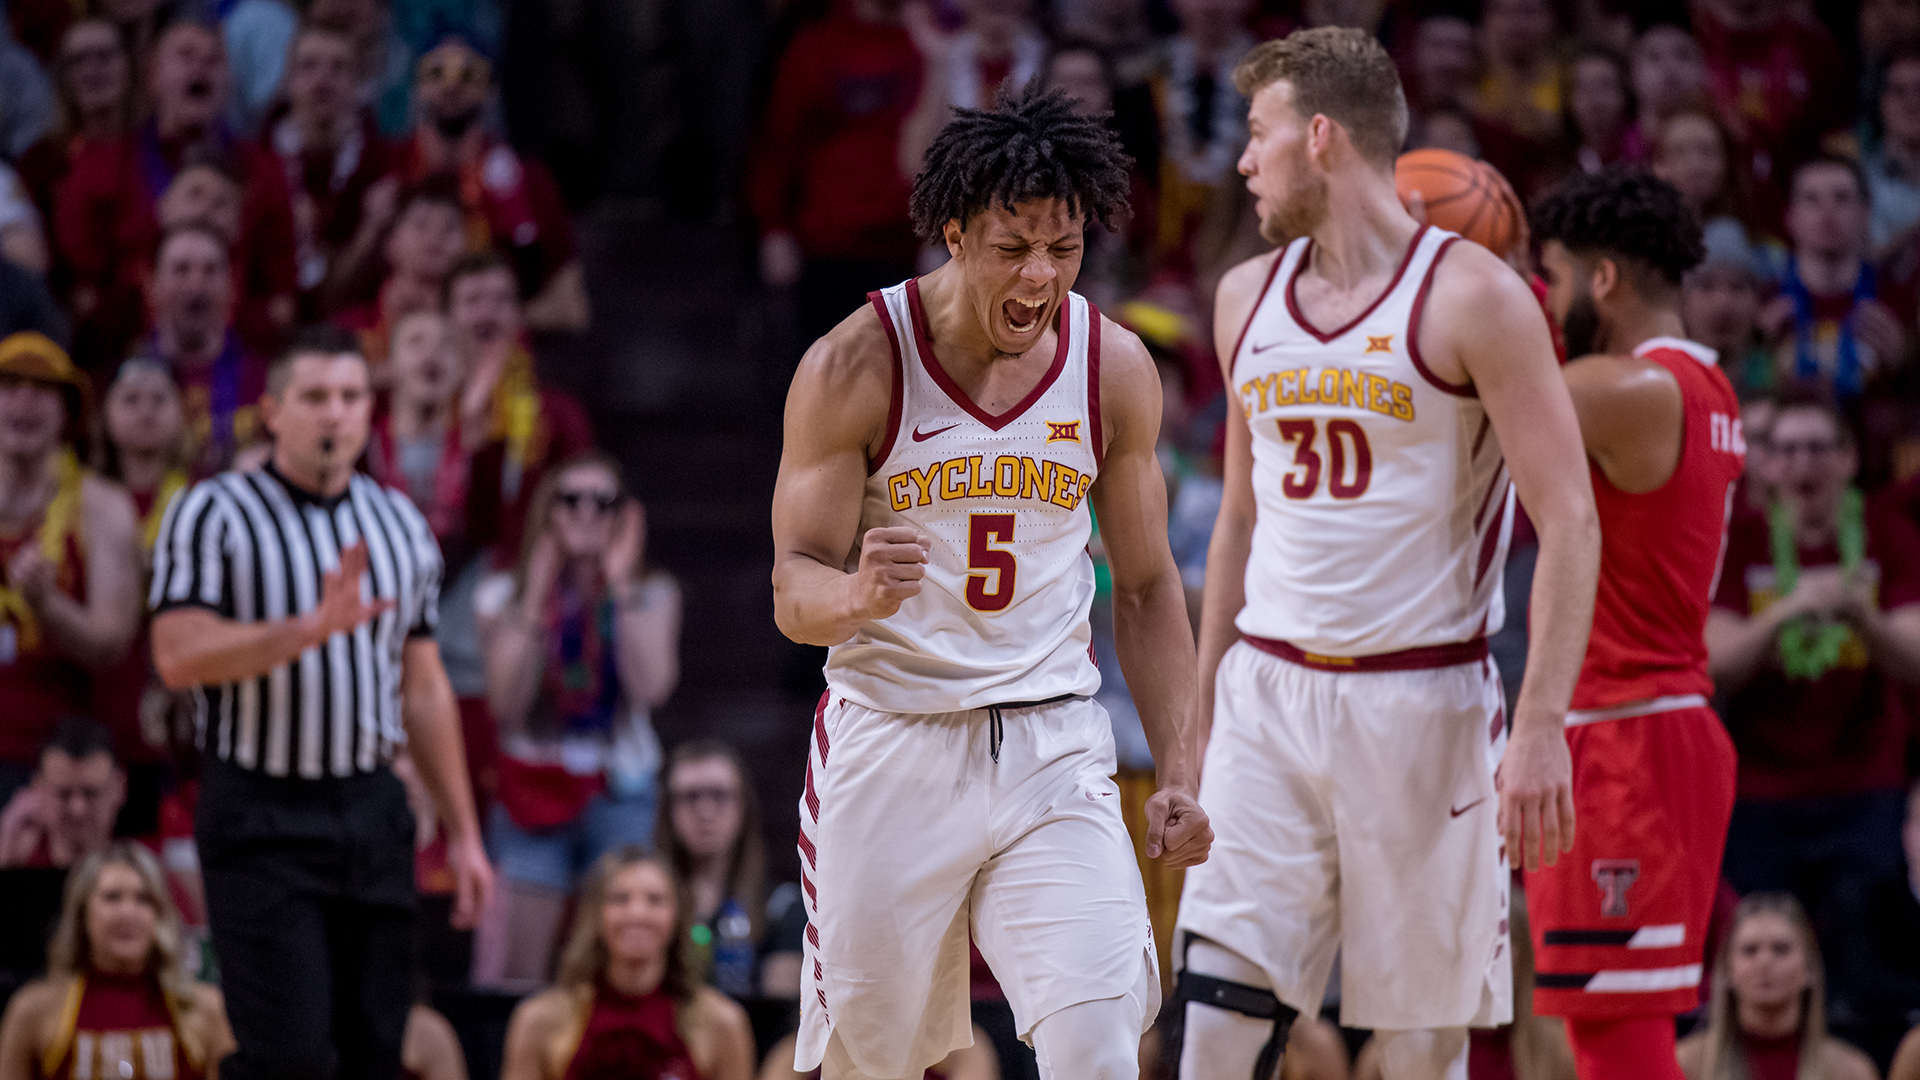 lindell wigginton - men's basketball - iowa state university athletics